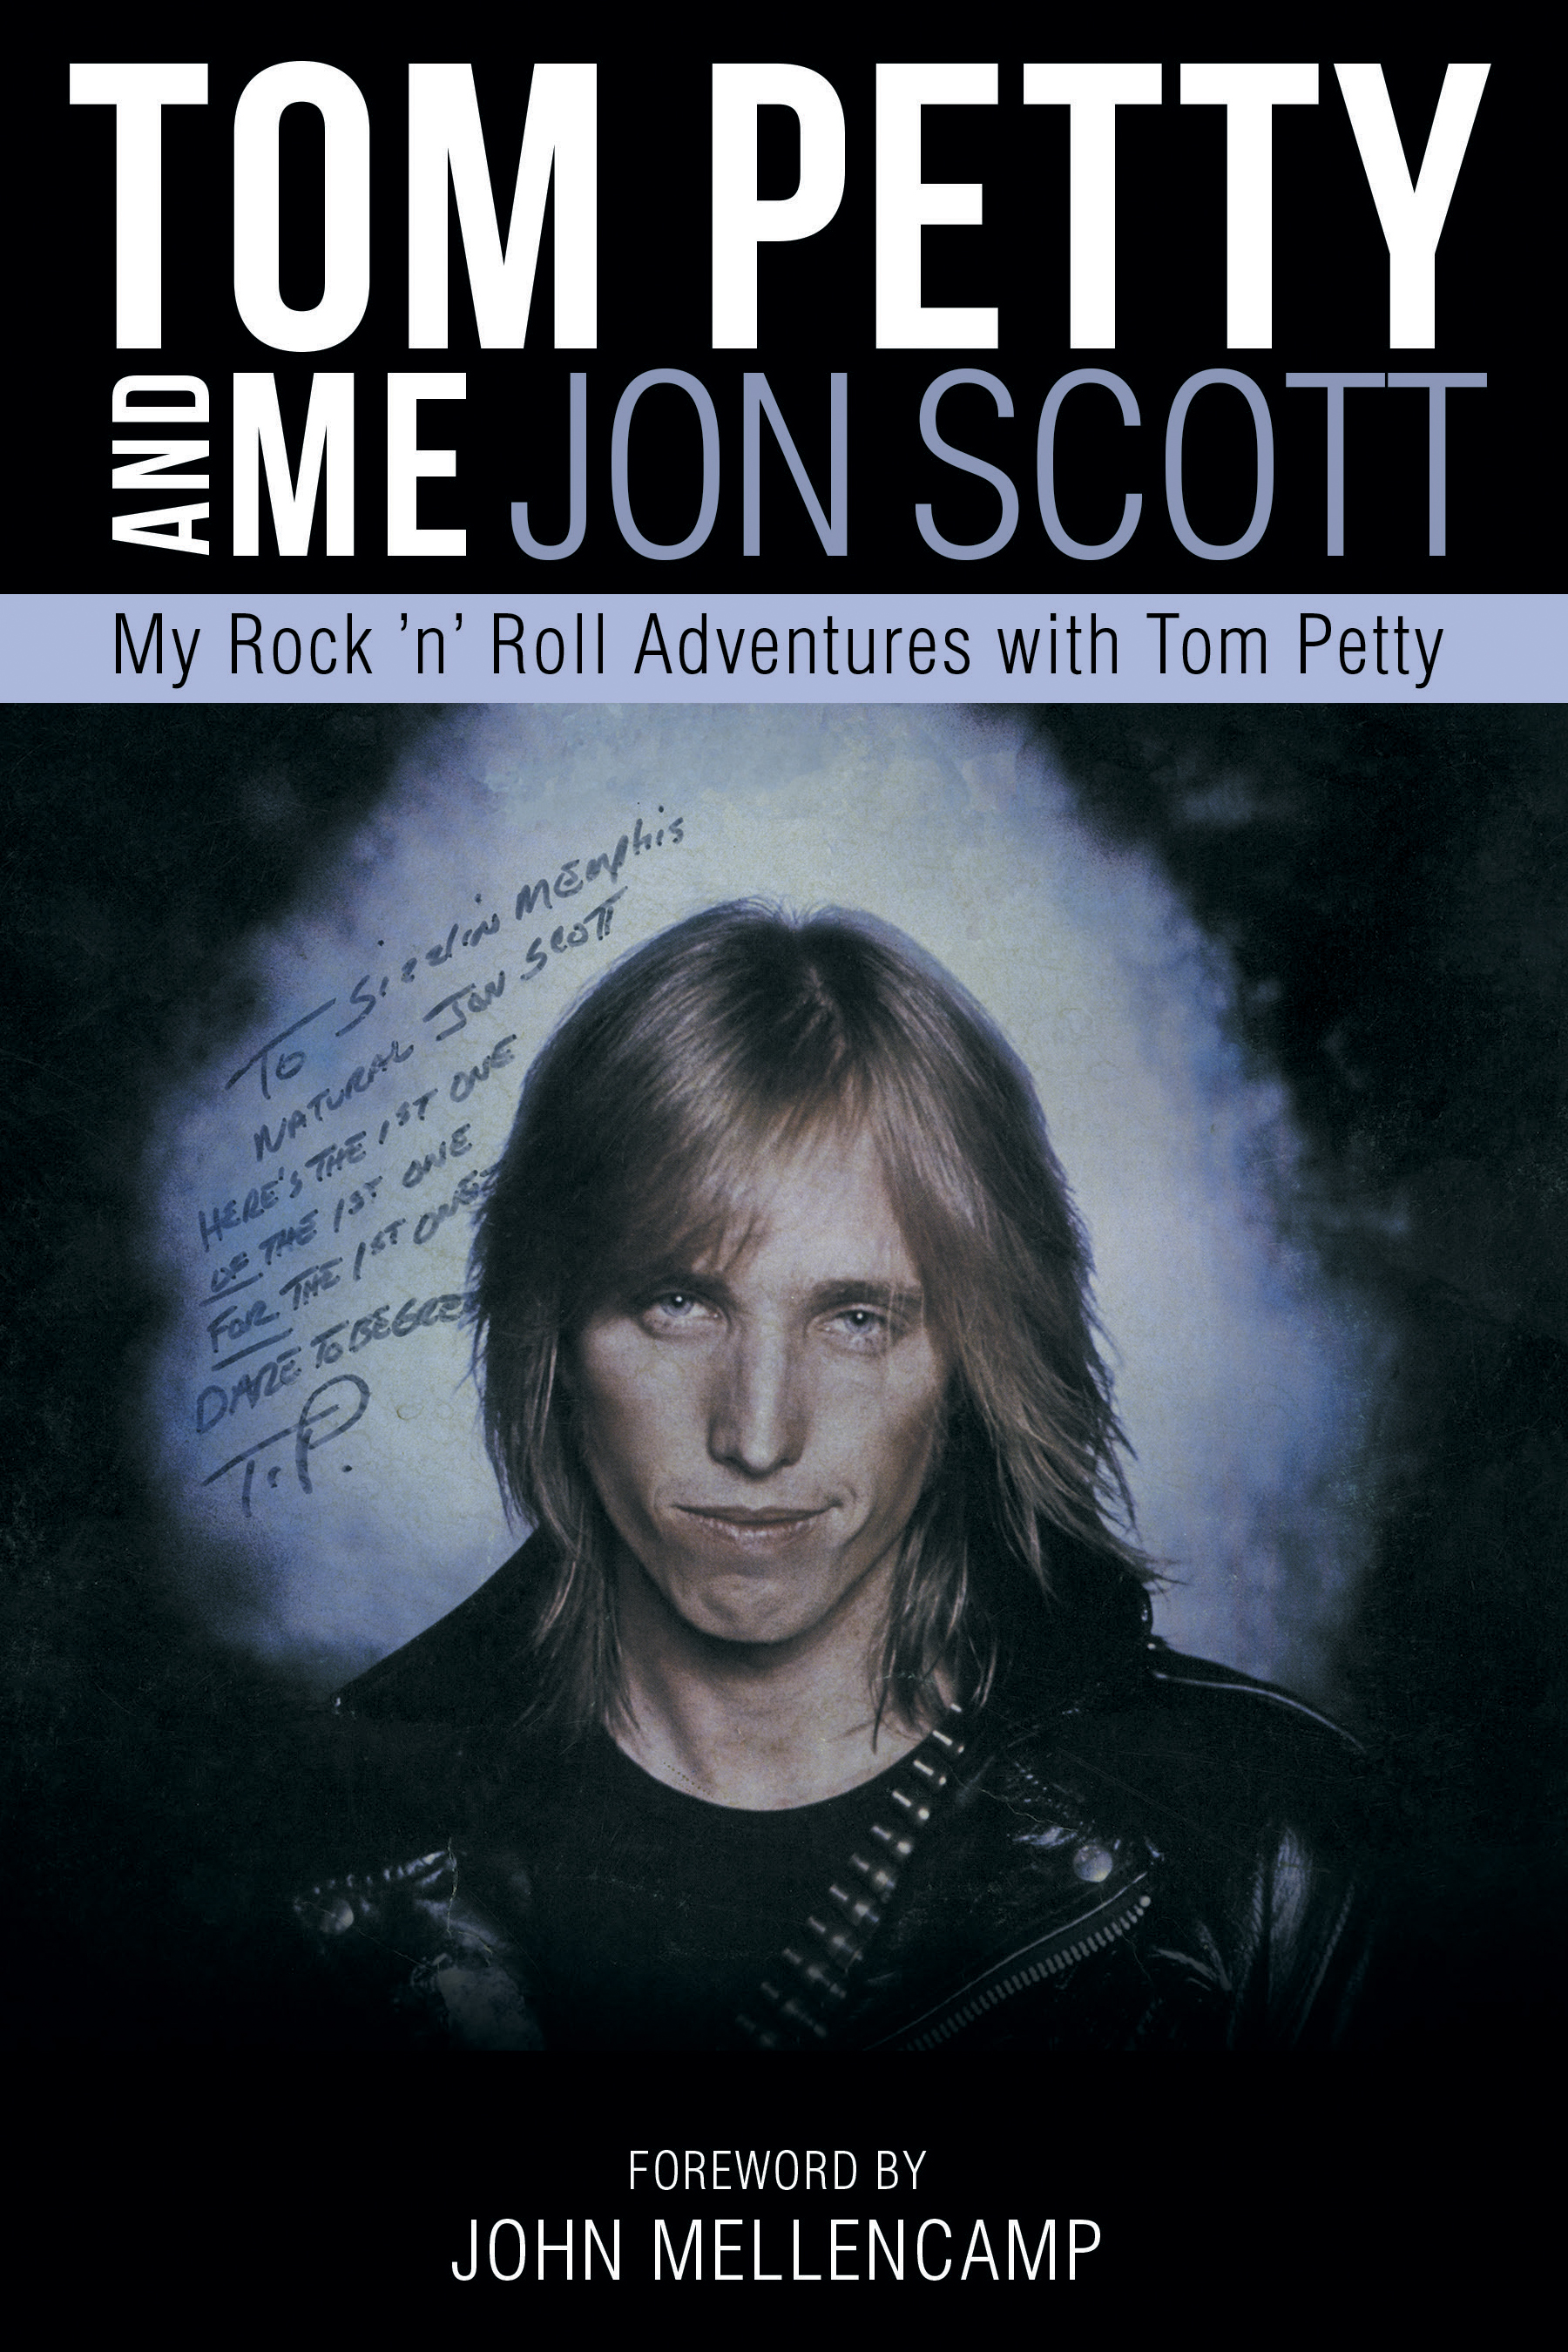 Tom Petty Remembered in New Book by Close Friend